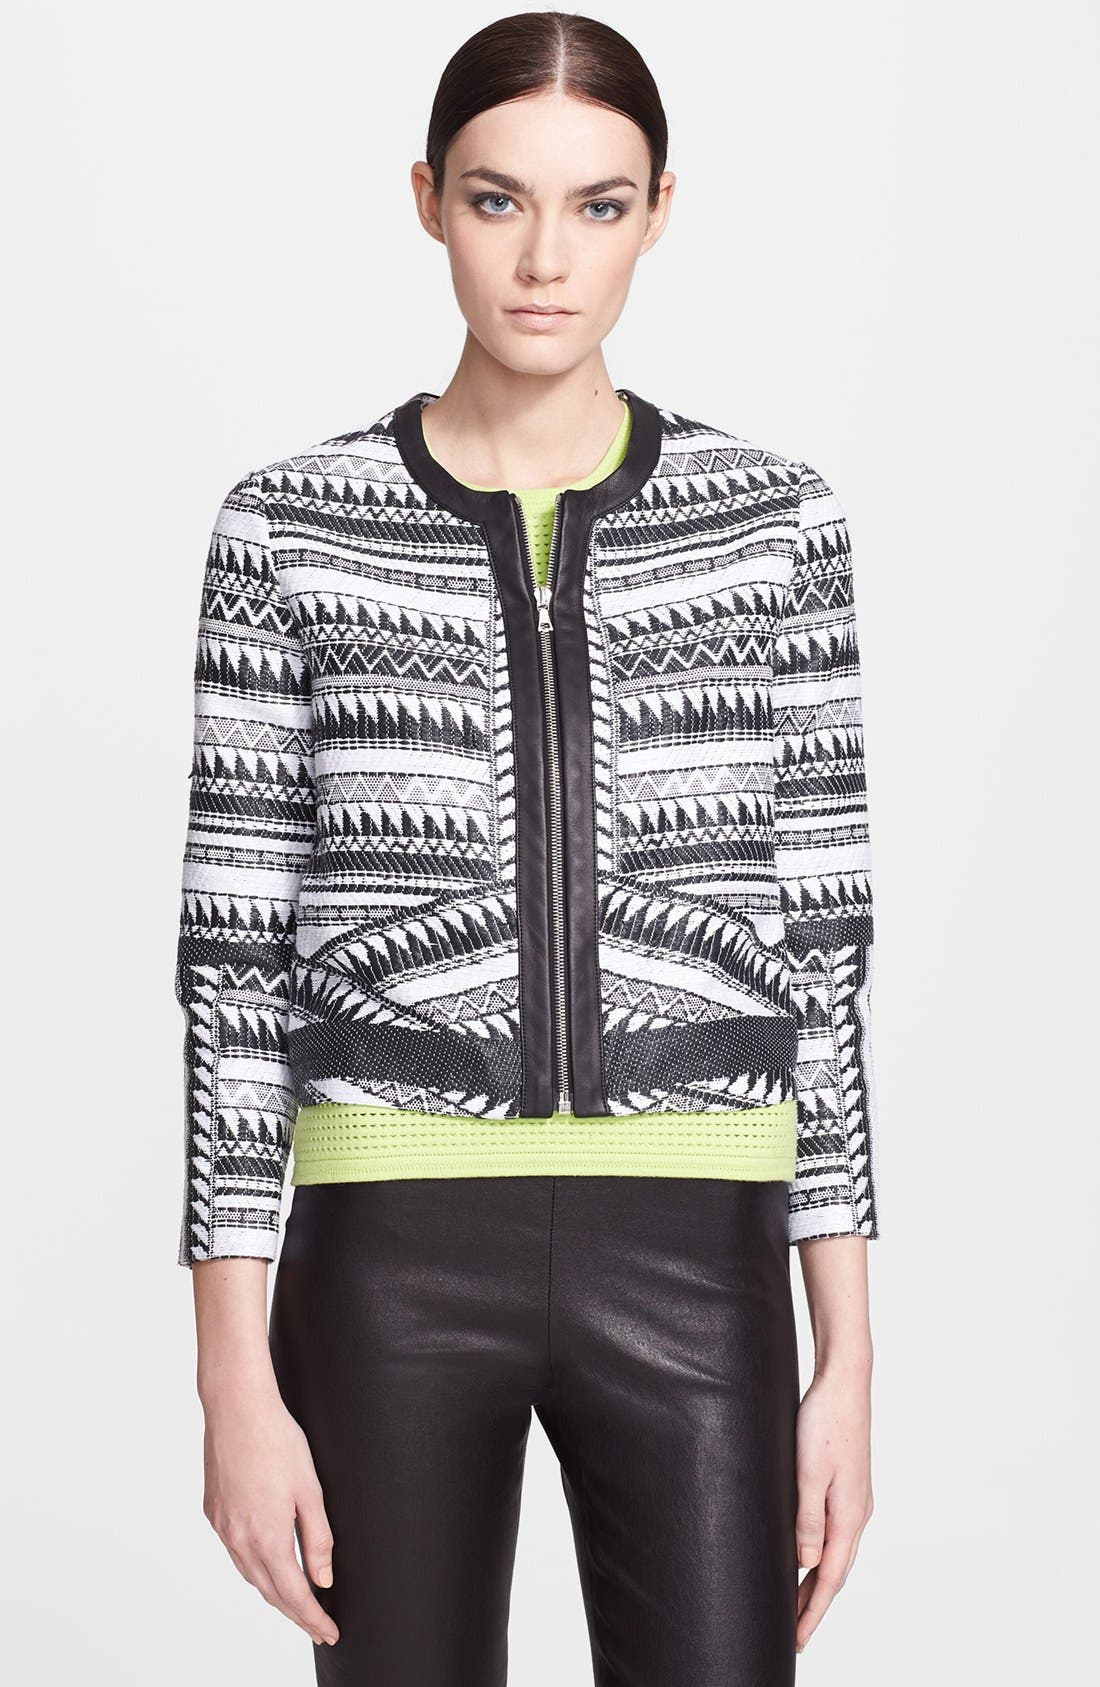 Alternate Image 1 Selected - Yigal Azrouël Print Crop Jacket